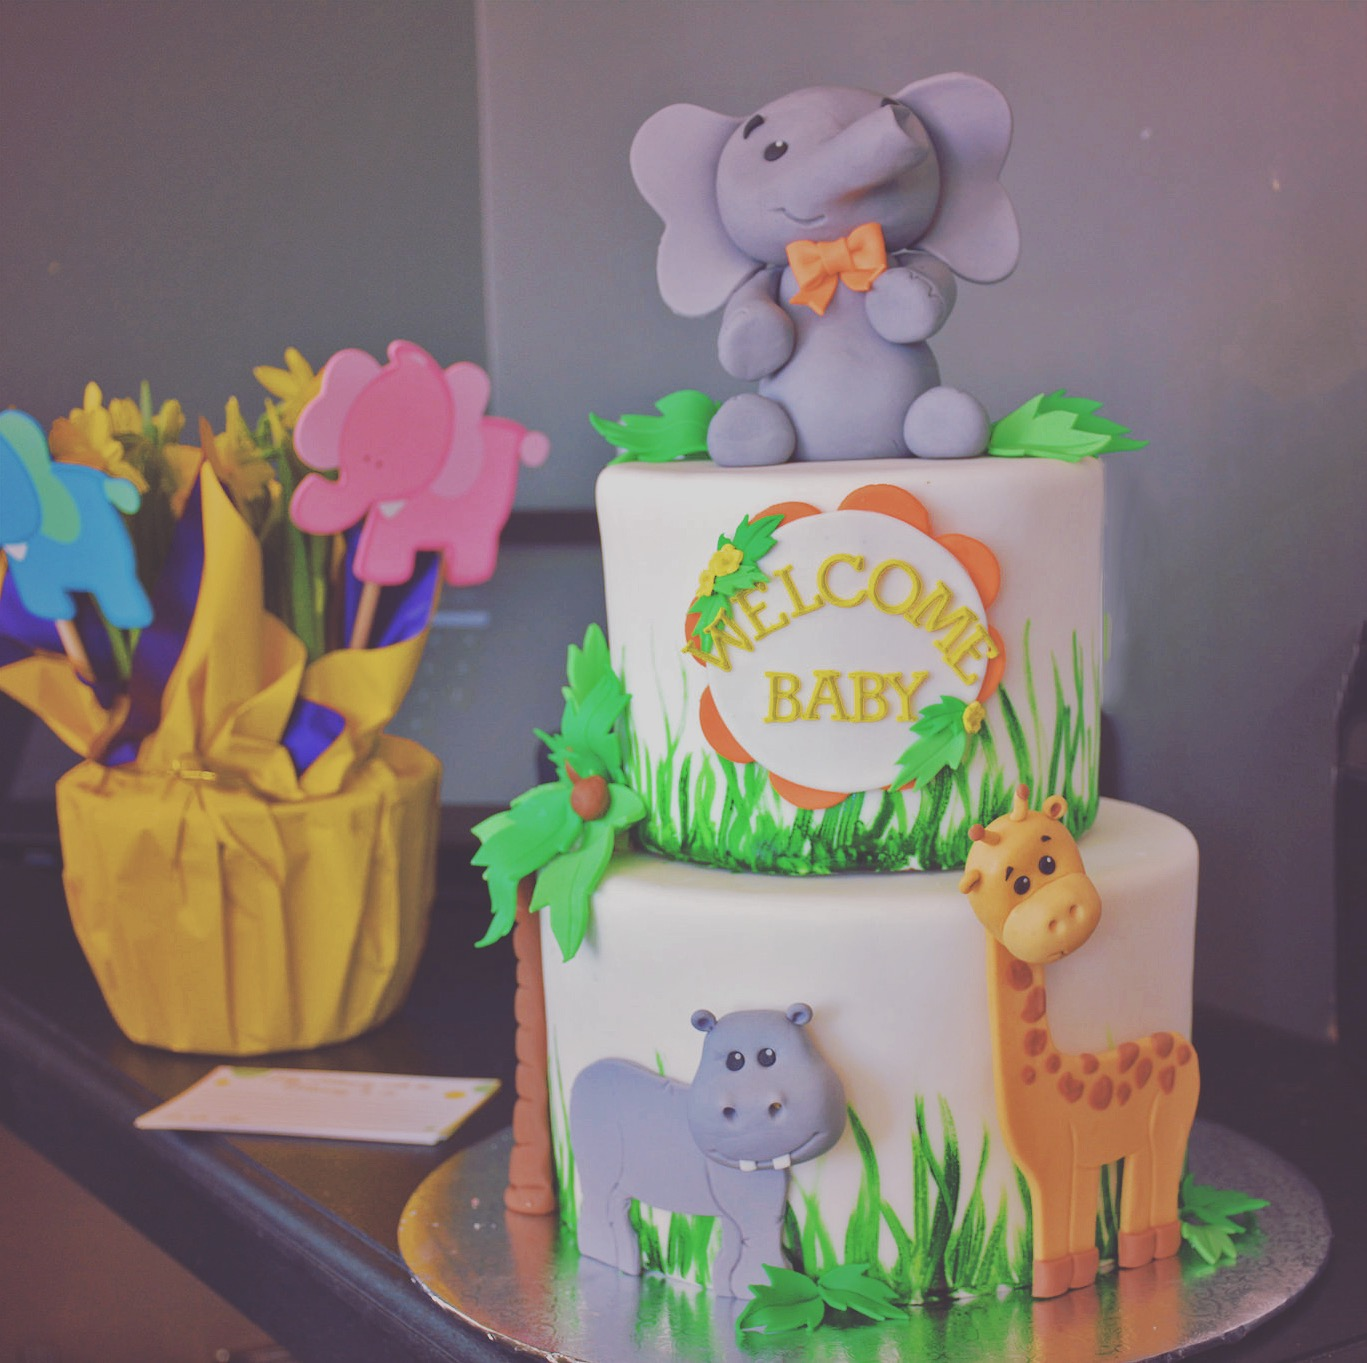 Copy of Baby Showers